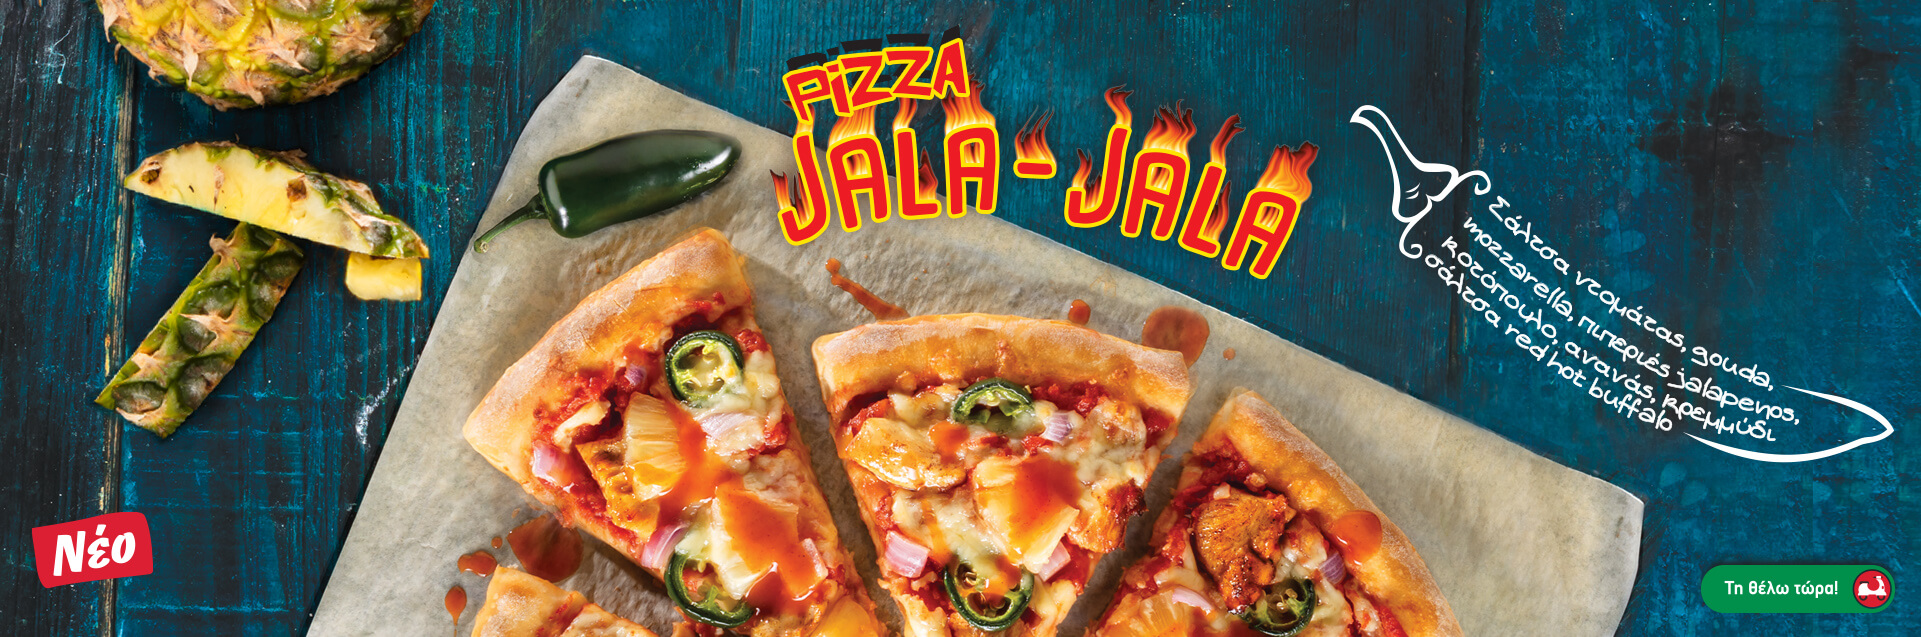 Νέα Pizza Jala Jala